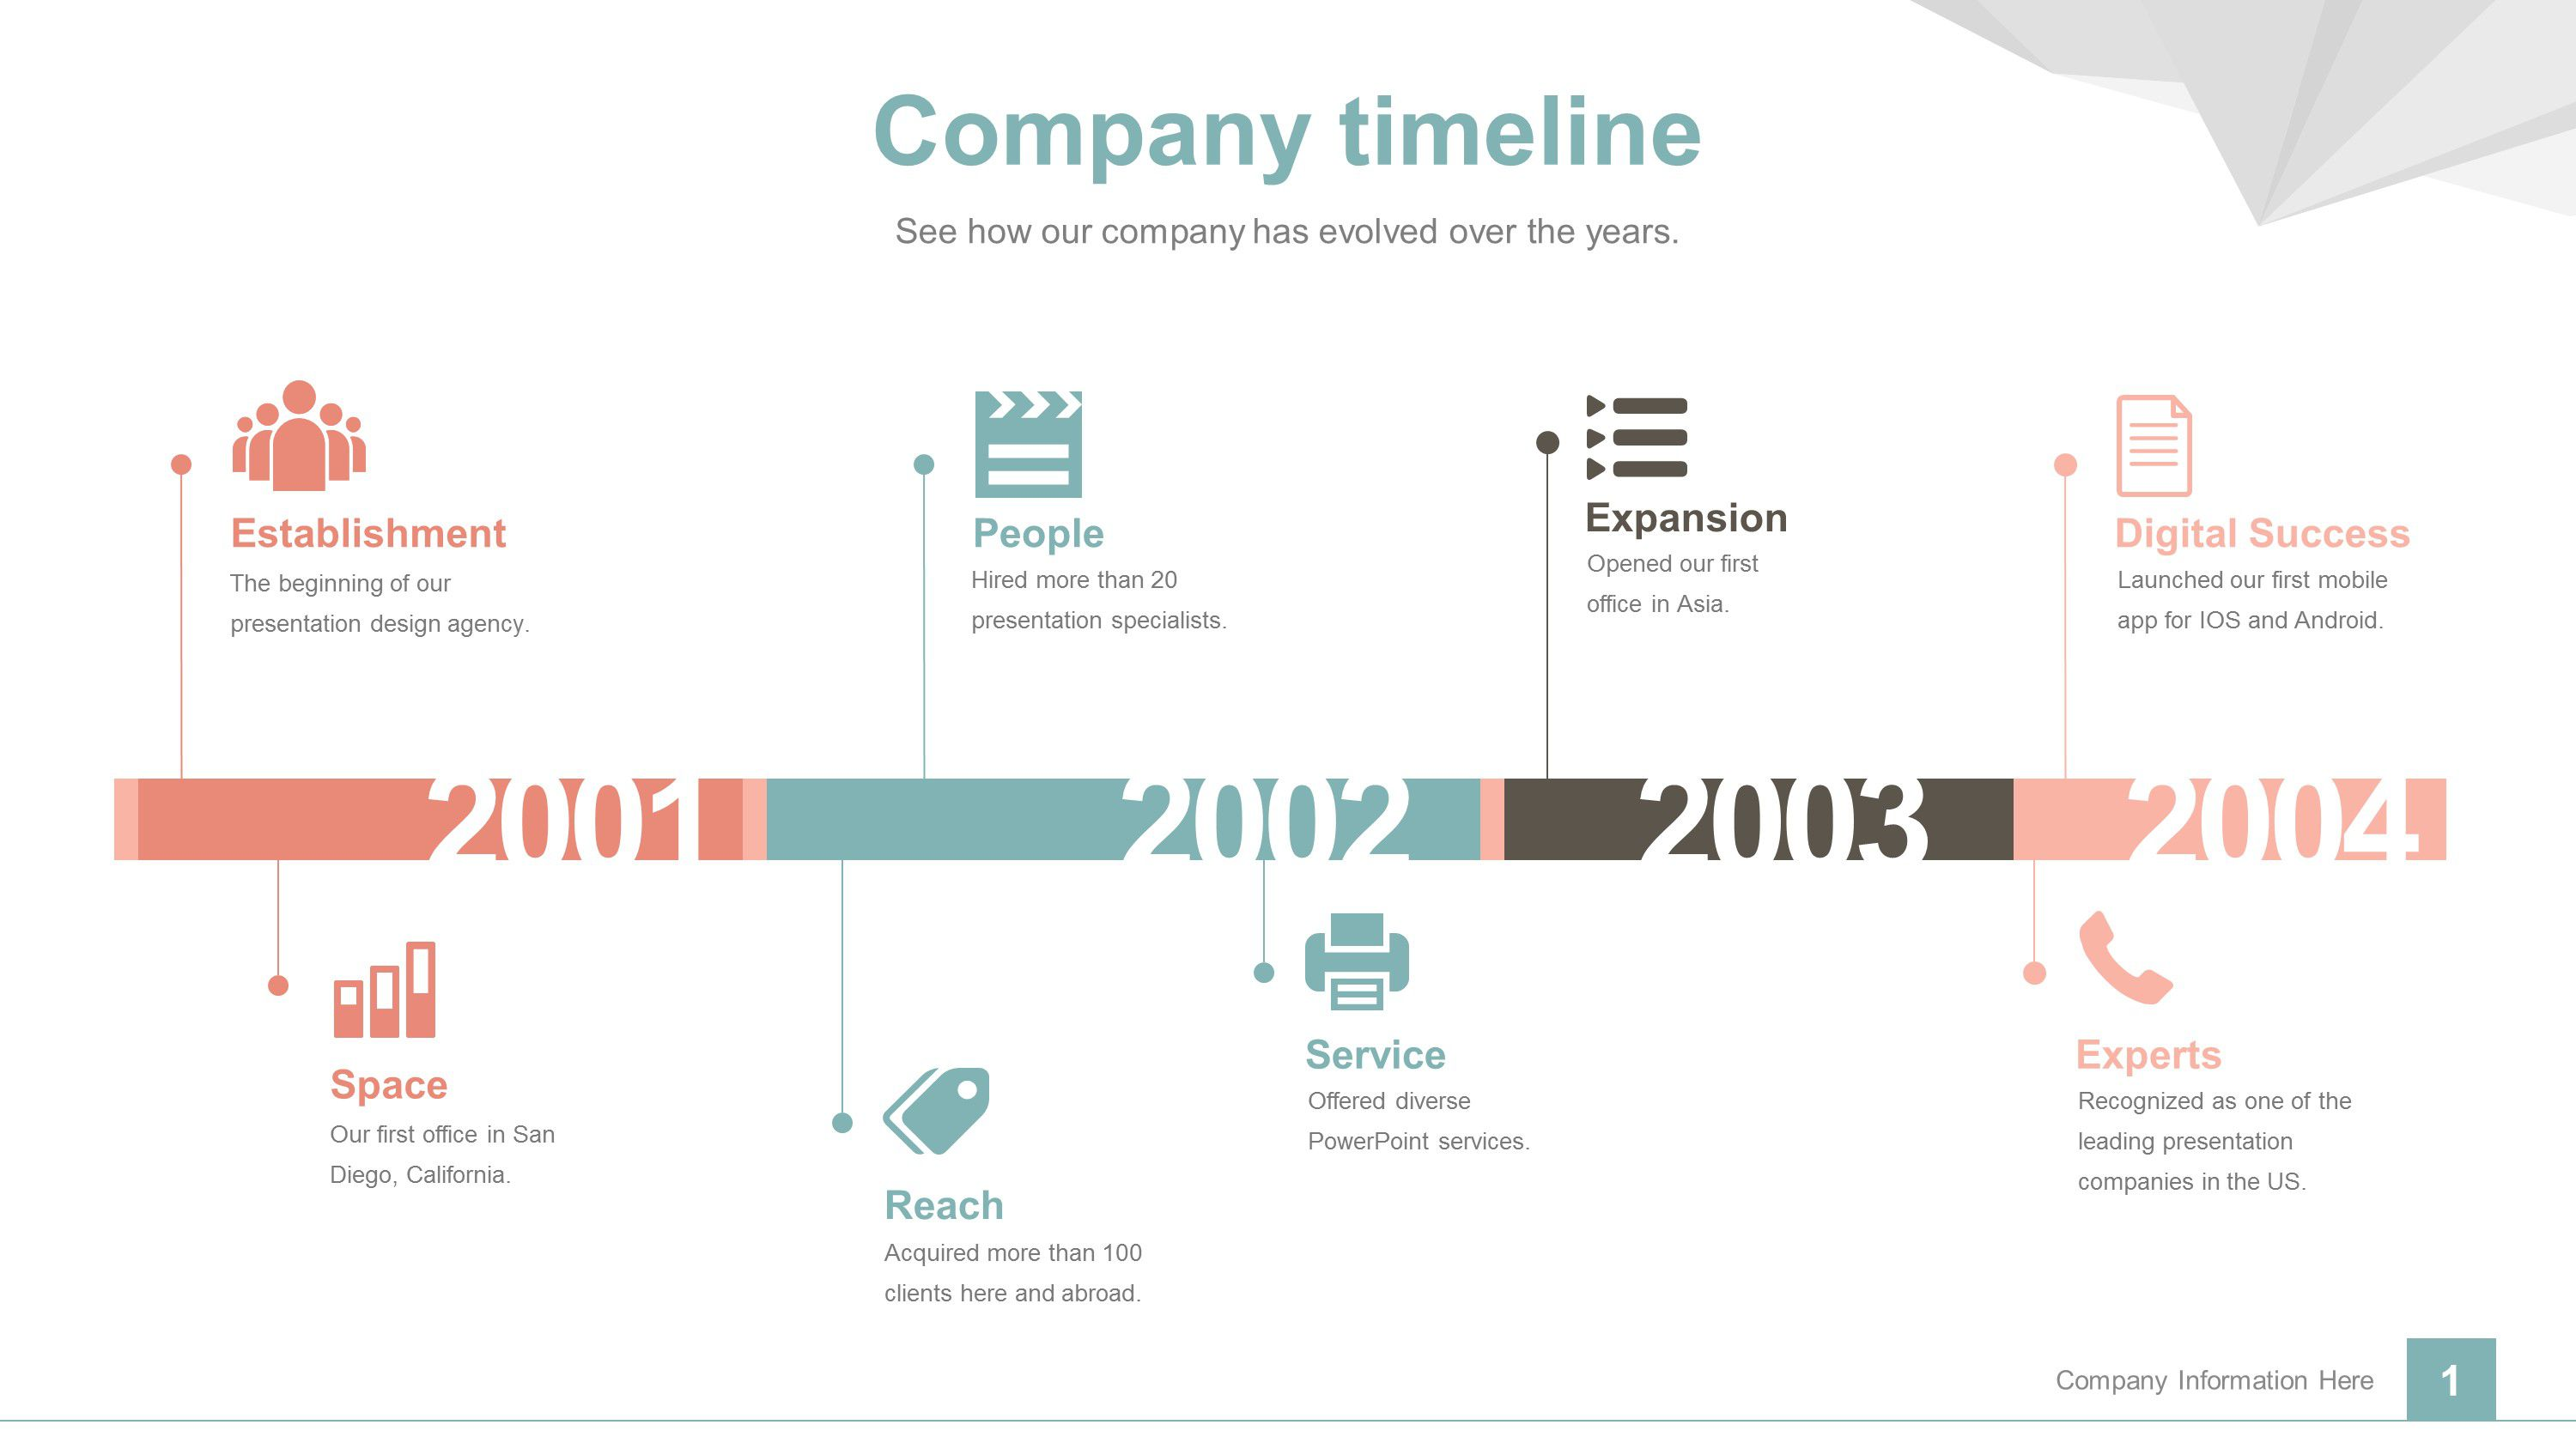 002 Excellent Timeline Graph Template For Powerpoint Presentation Photo Full